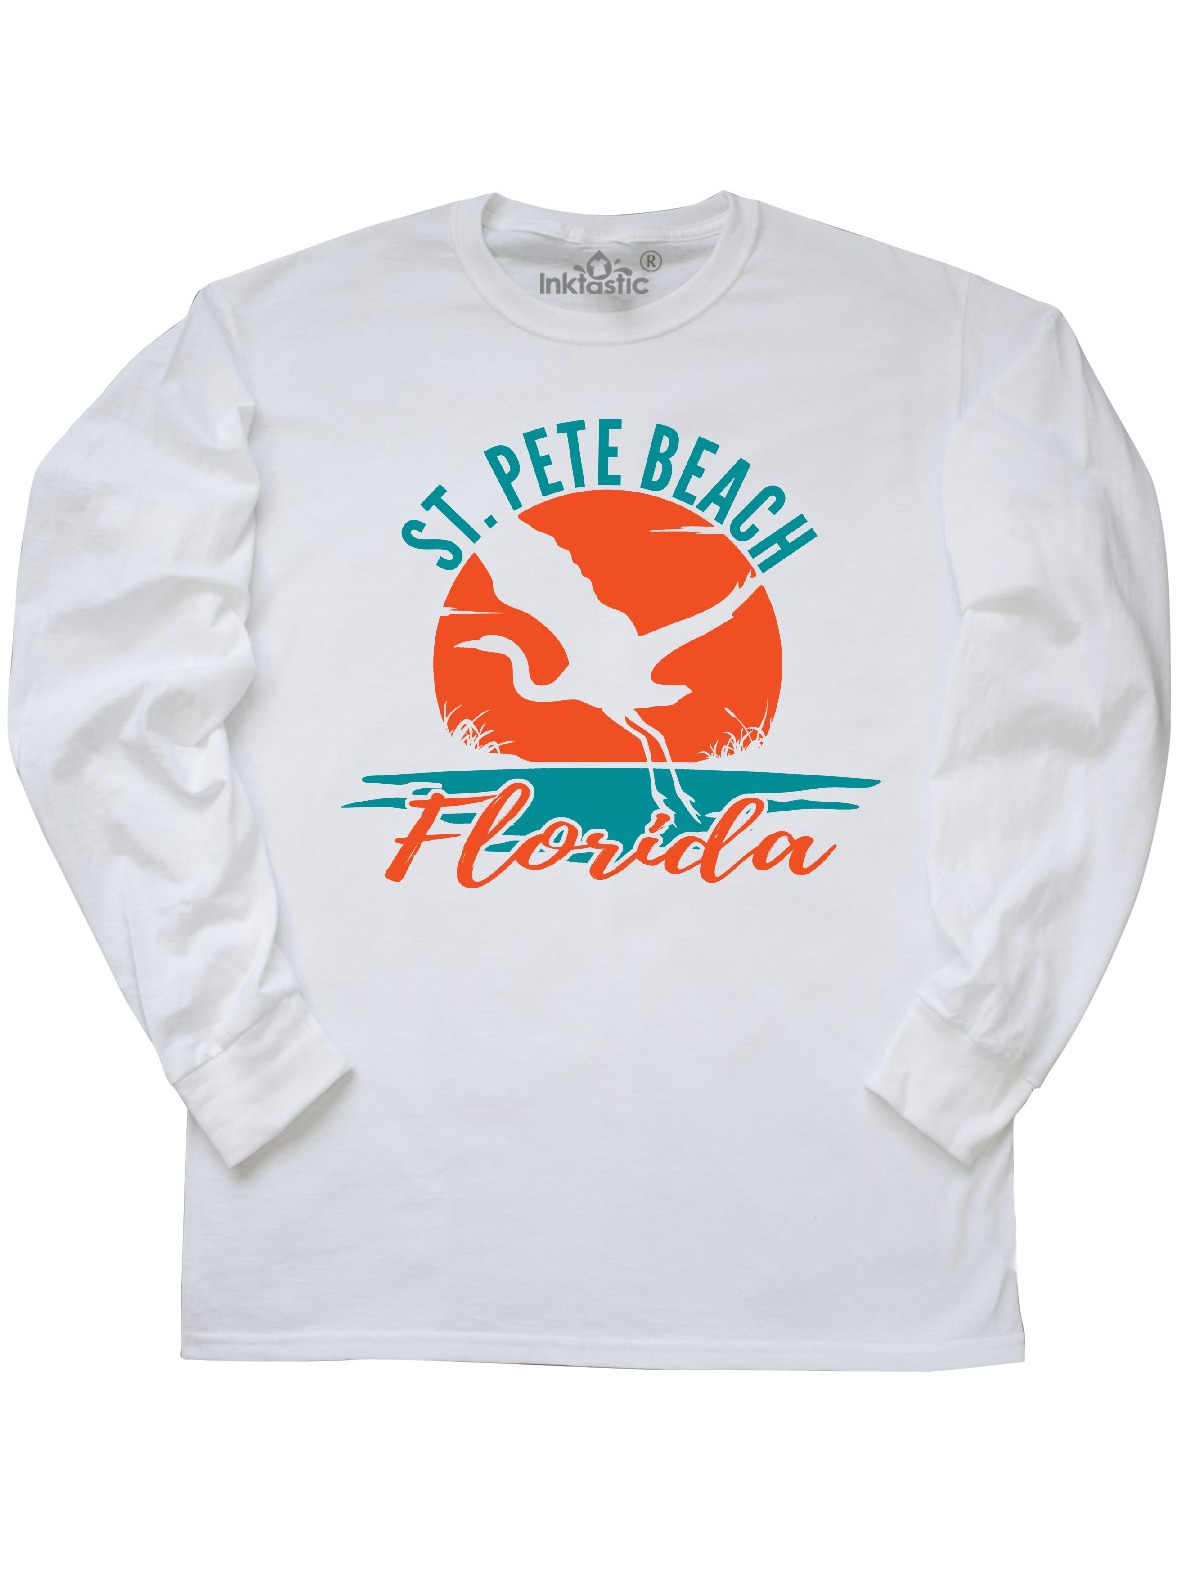 inktastic St Pete Beach Florida Sunset Baby T-Shirt